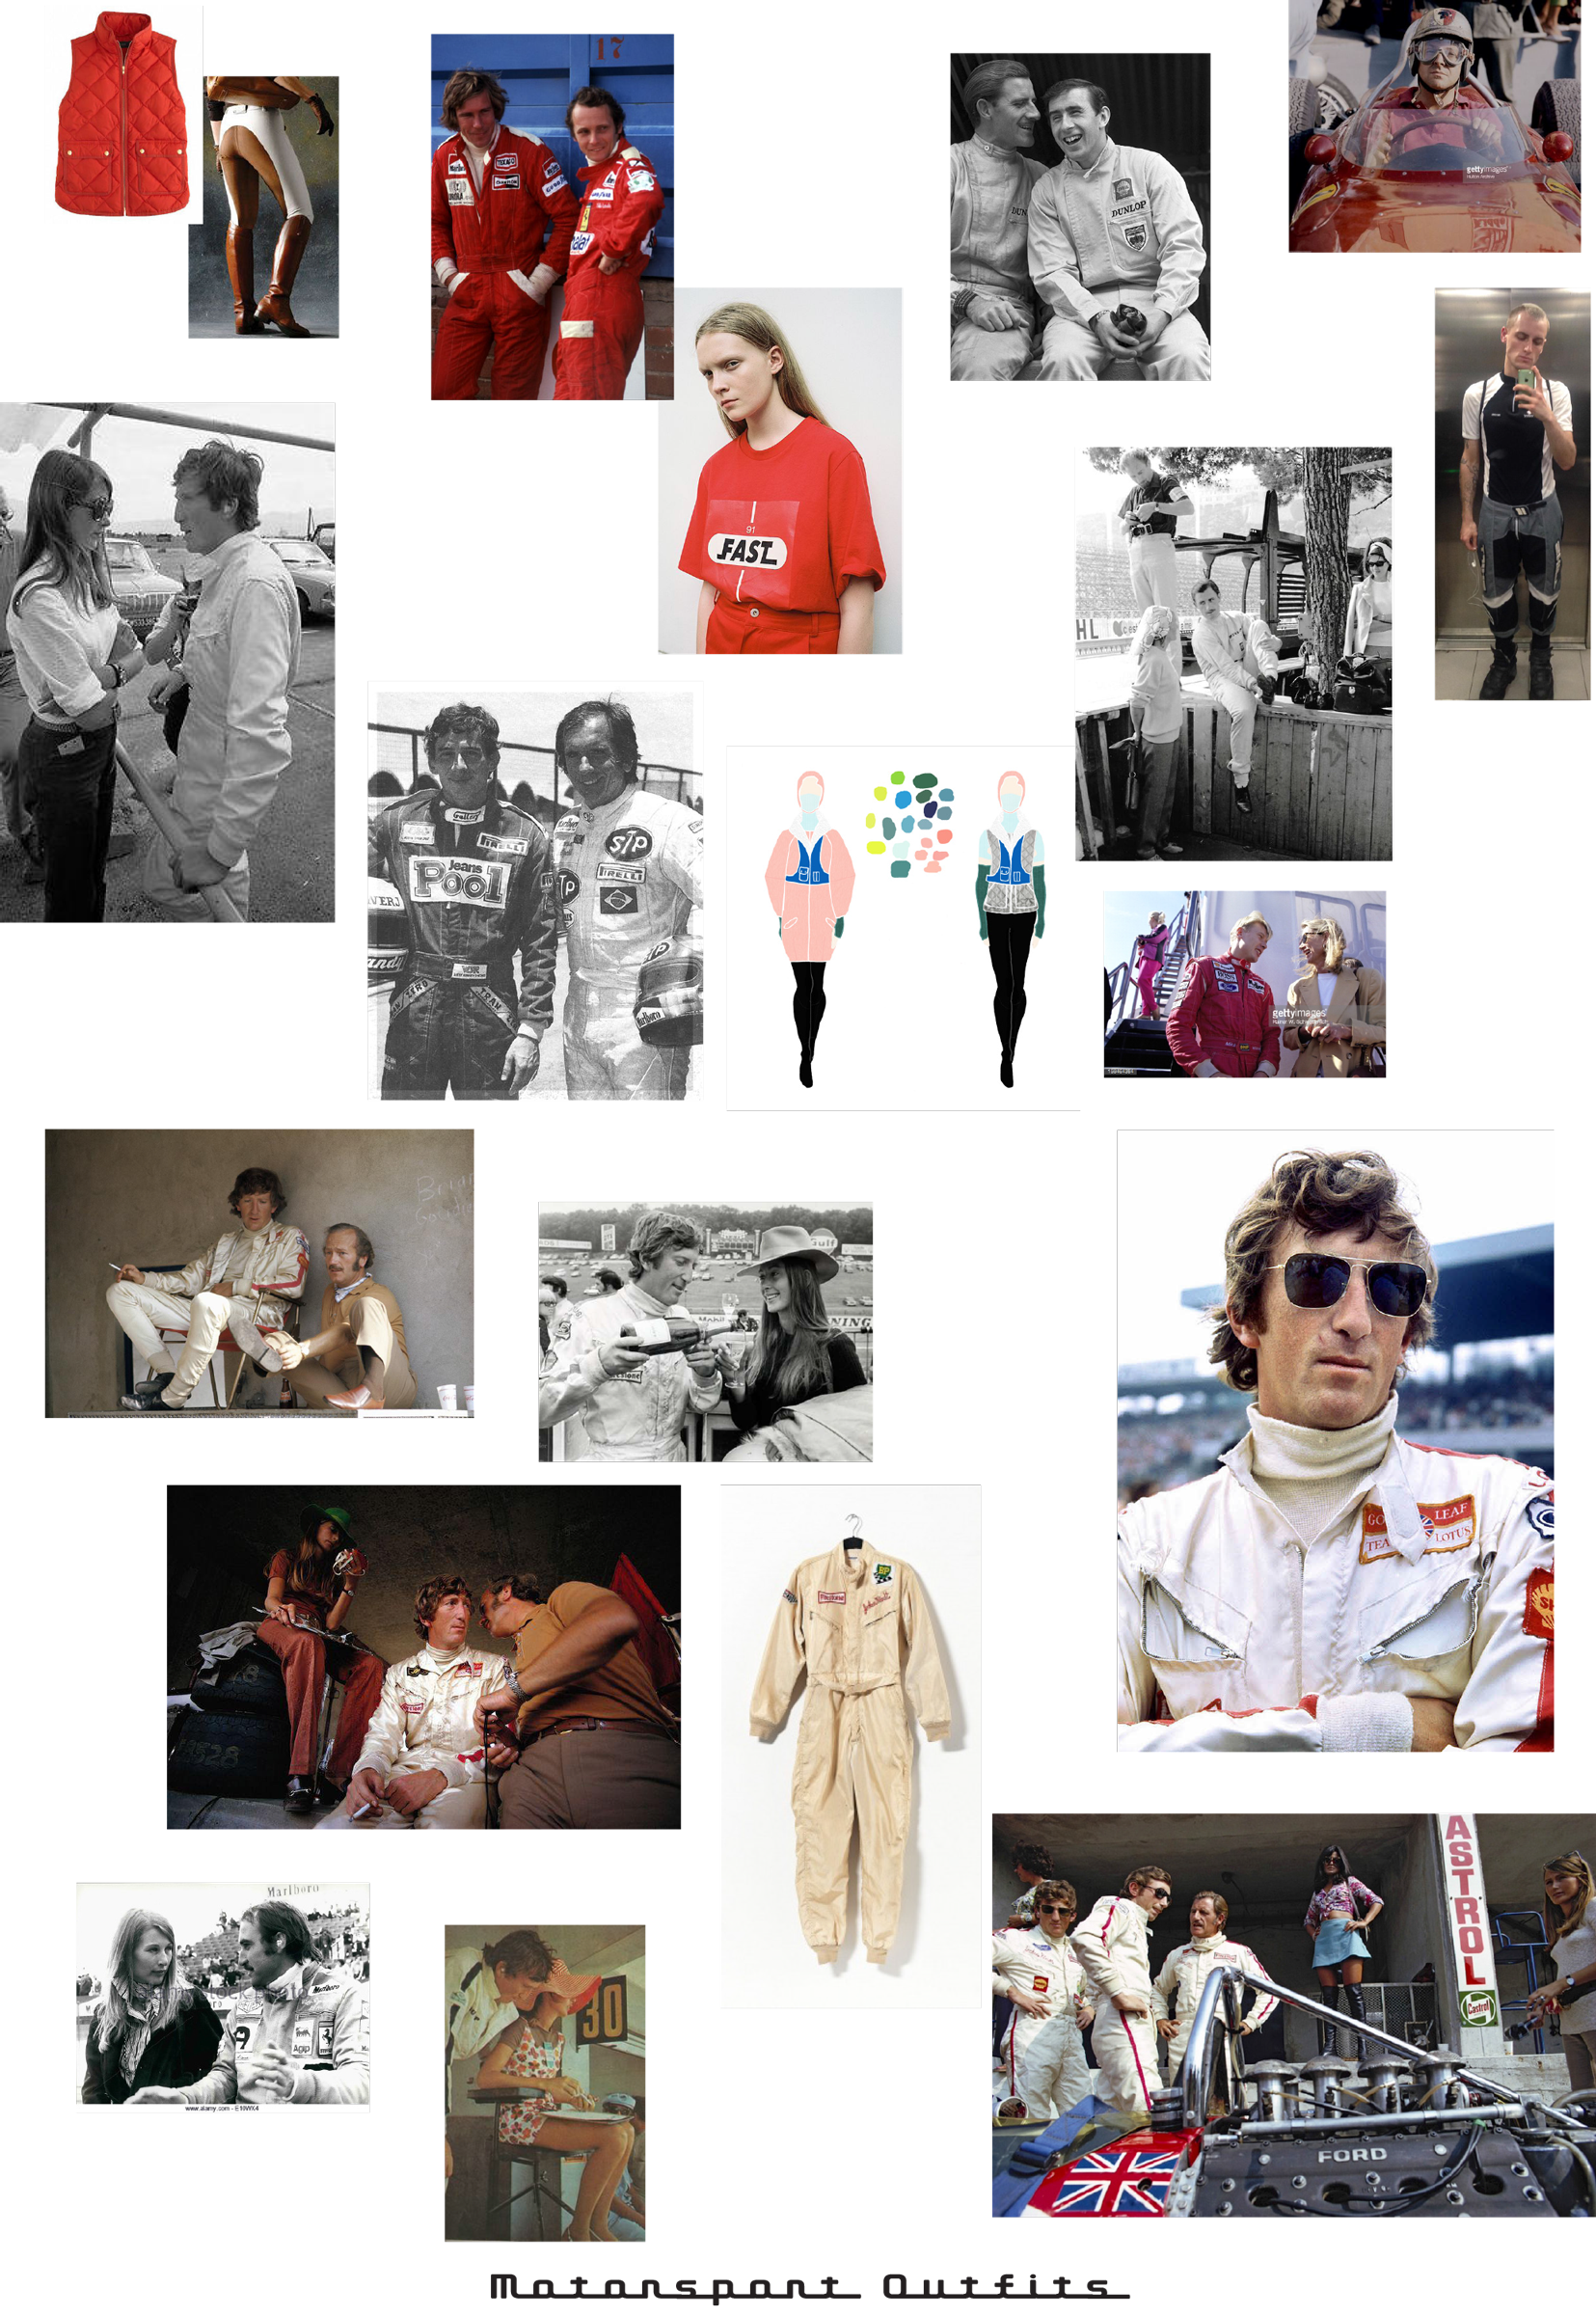 a mood board of motorsport outfit inspiration - mainly overalls with sponsor logos on them